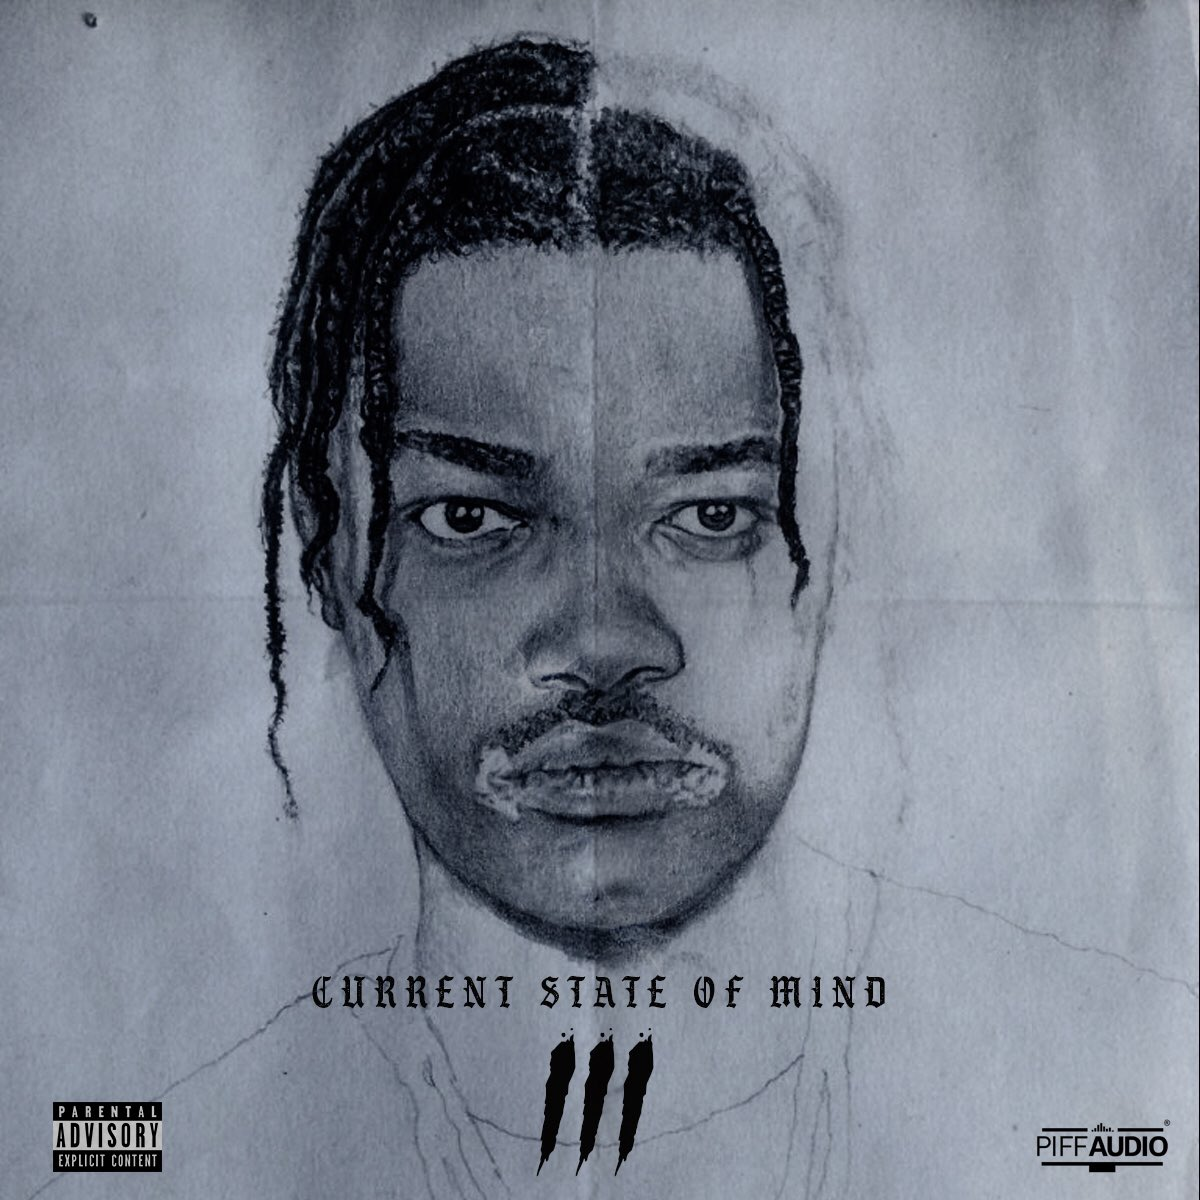 zoocci coke dope Zoocci Coke Dope's New 'Current State Of Mind III' Project Drop Delayed D675kNXWkAEvYq5 1